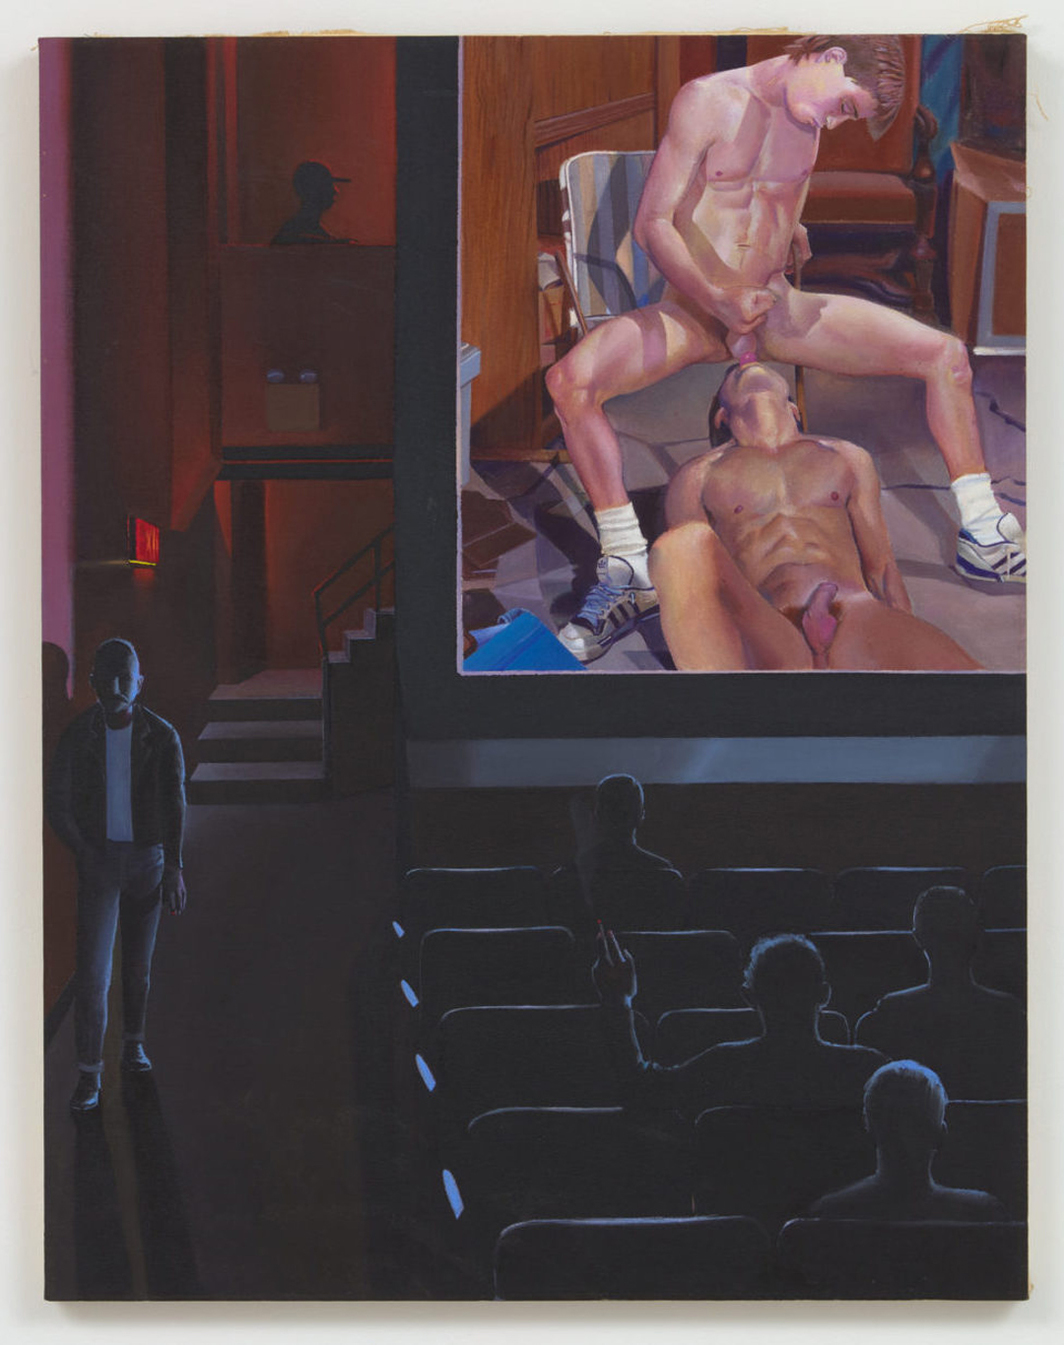 Patrick Angus, I Get Weak, 1991, oil and acrylic on canvas, 36 x 28 1/4.""